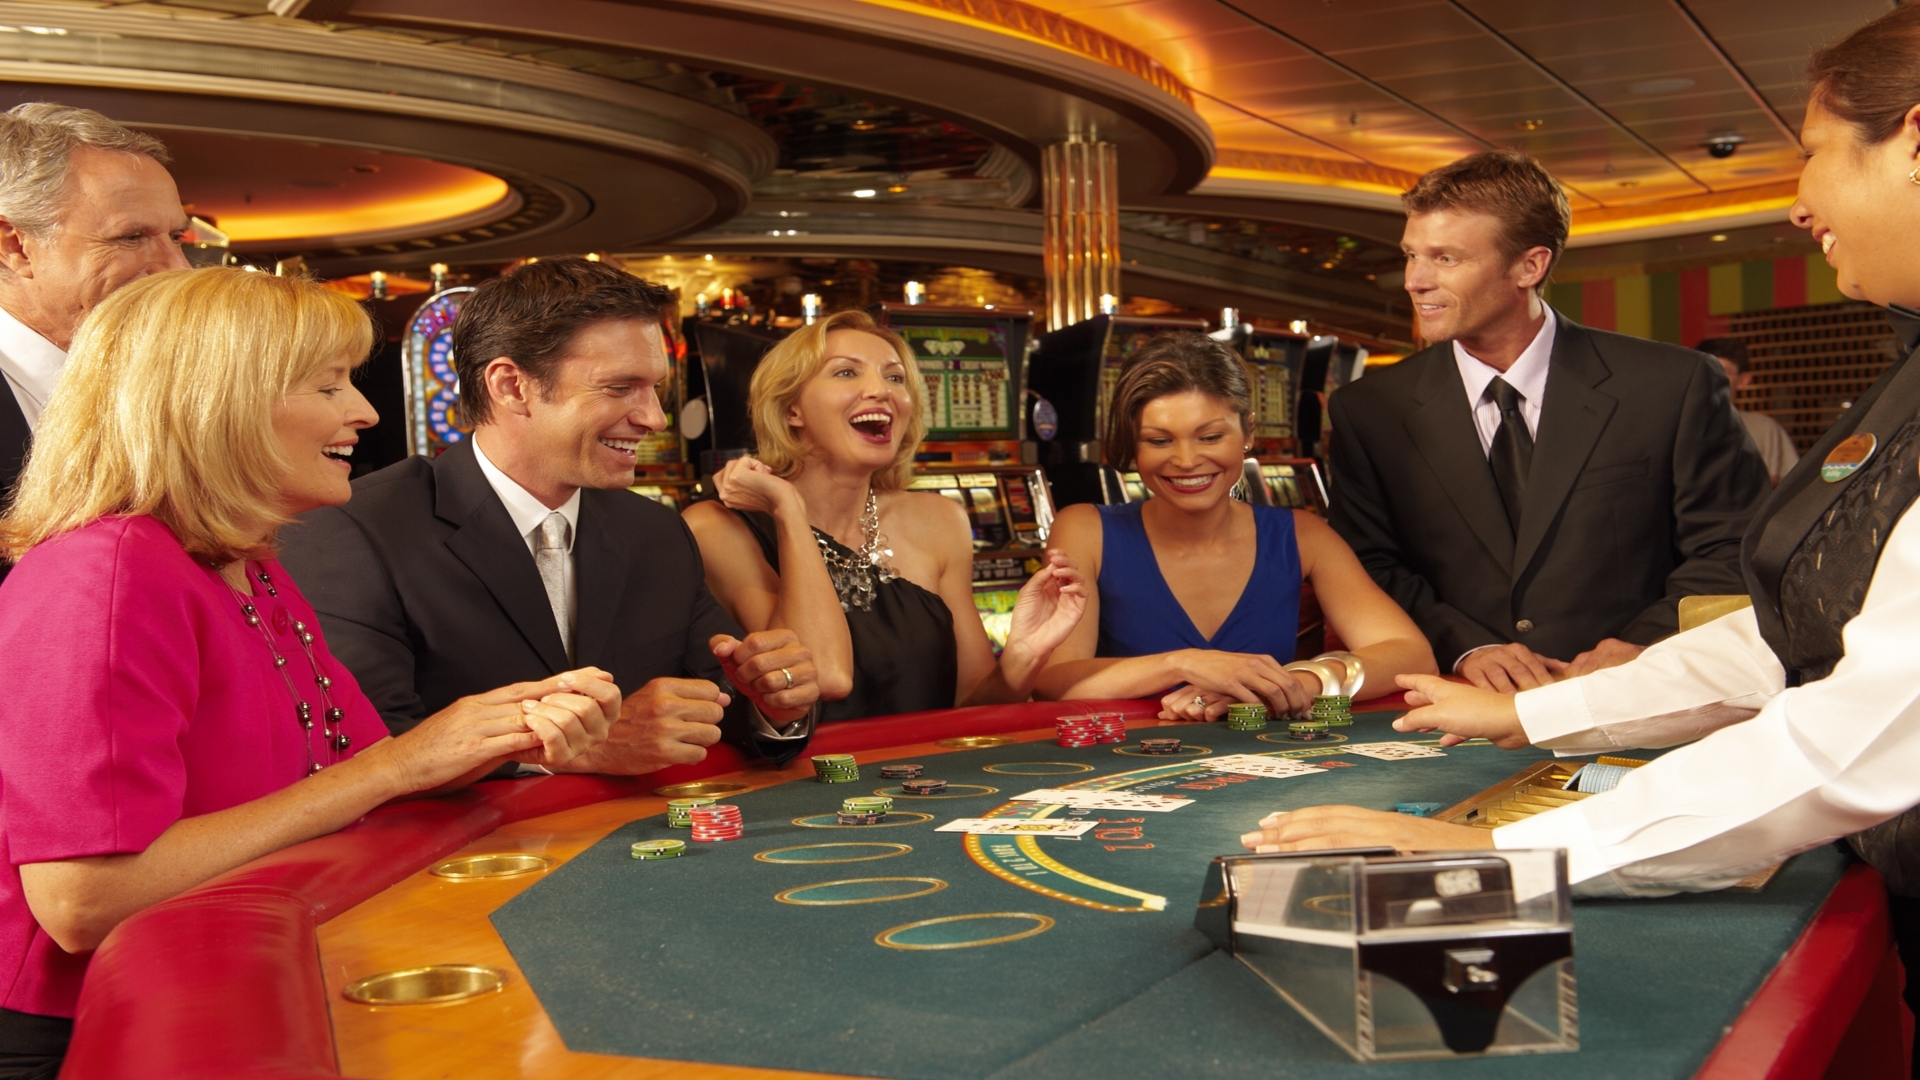 The best games that you can try in a casino